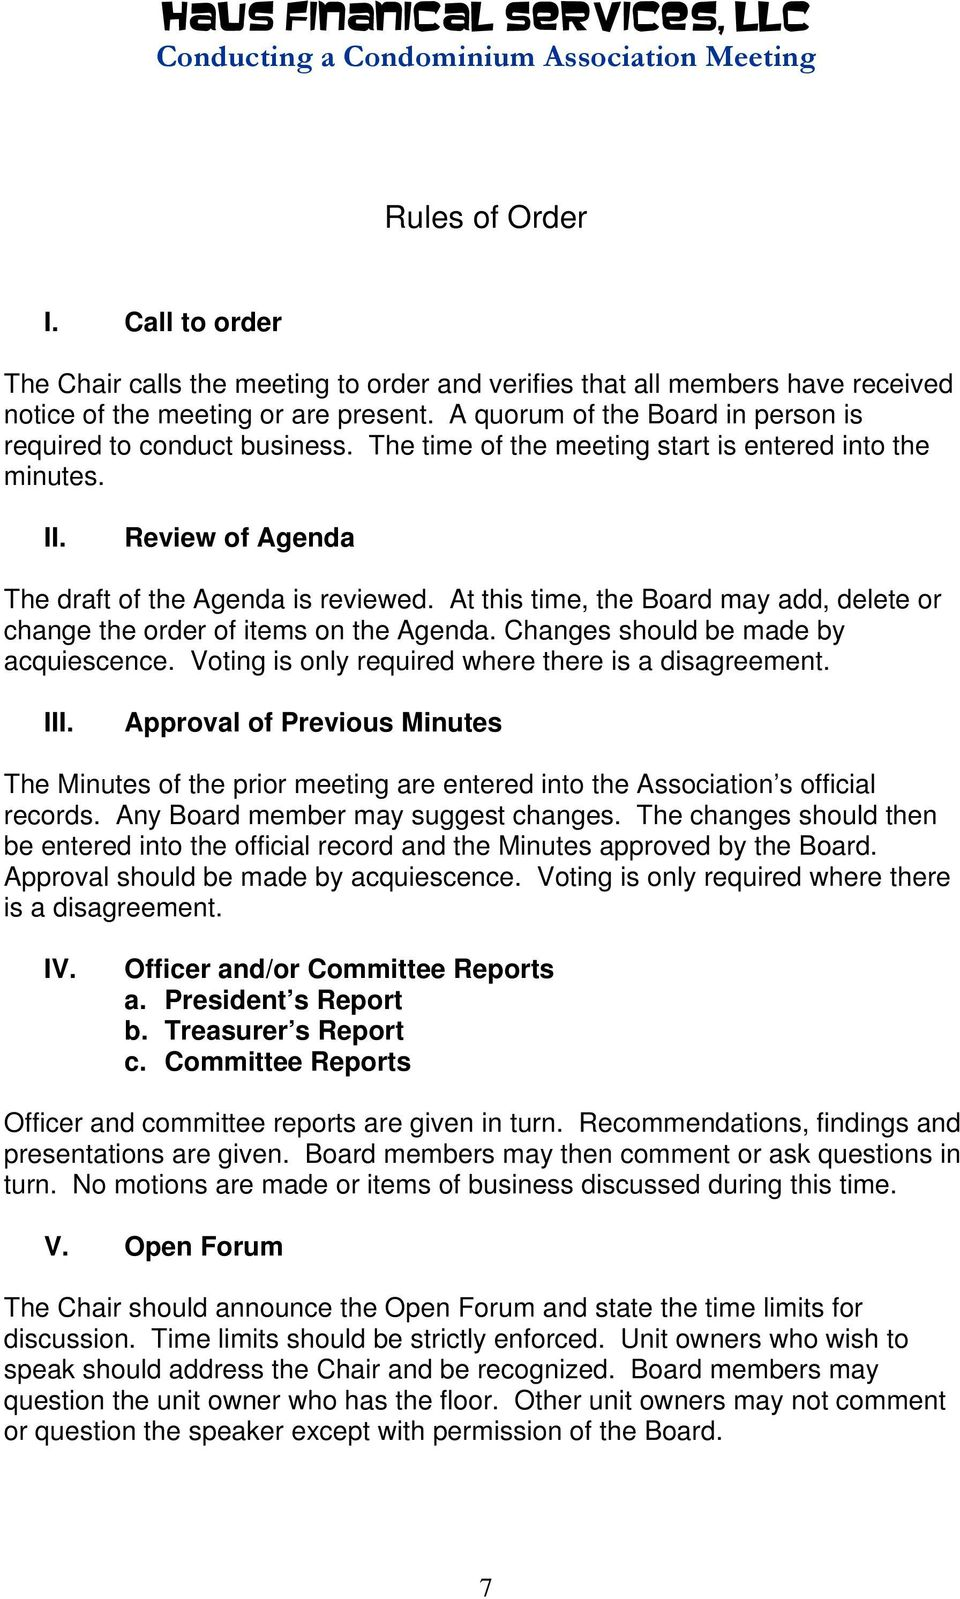 At this time, the Board may add, delete or change the order of items on the Agenda. Changes should be made by acquiescence. Voting is only required where there is a disagreement. III.